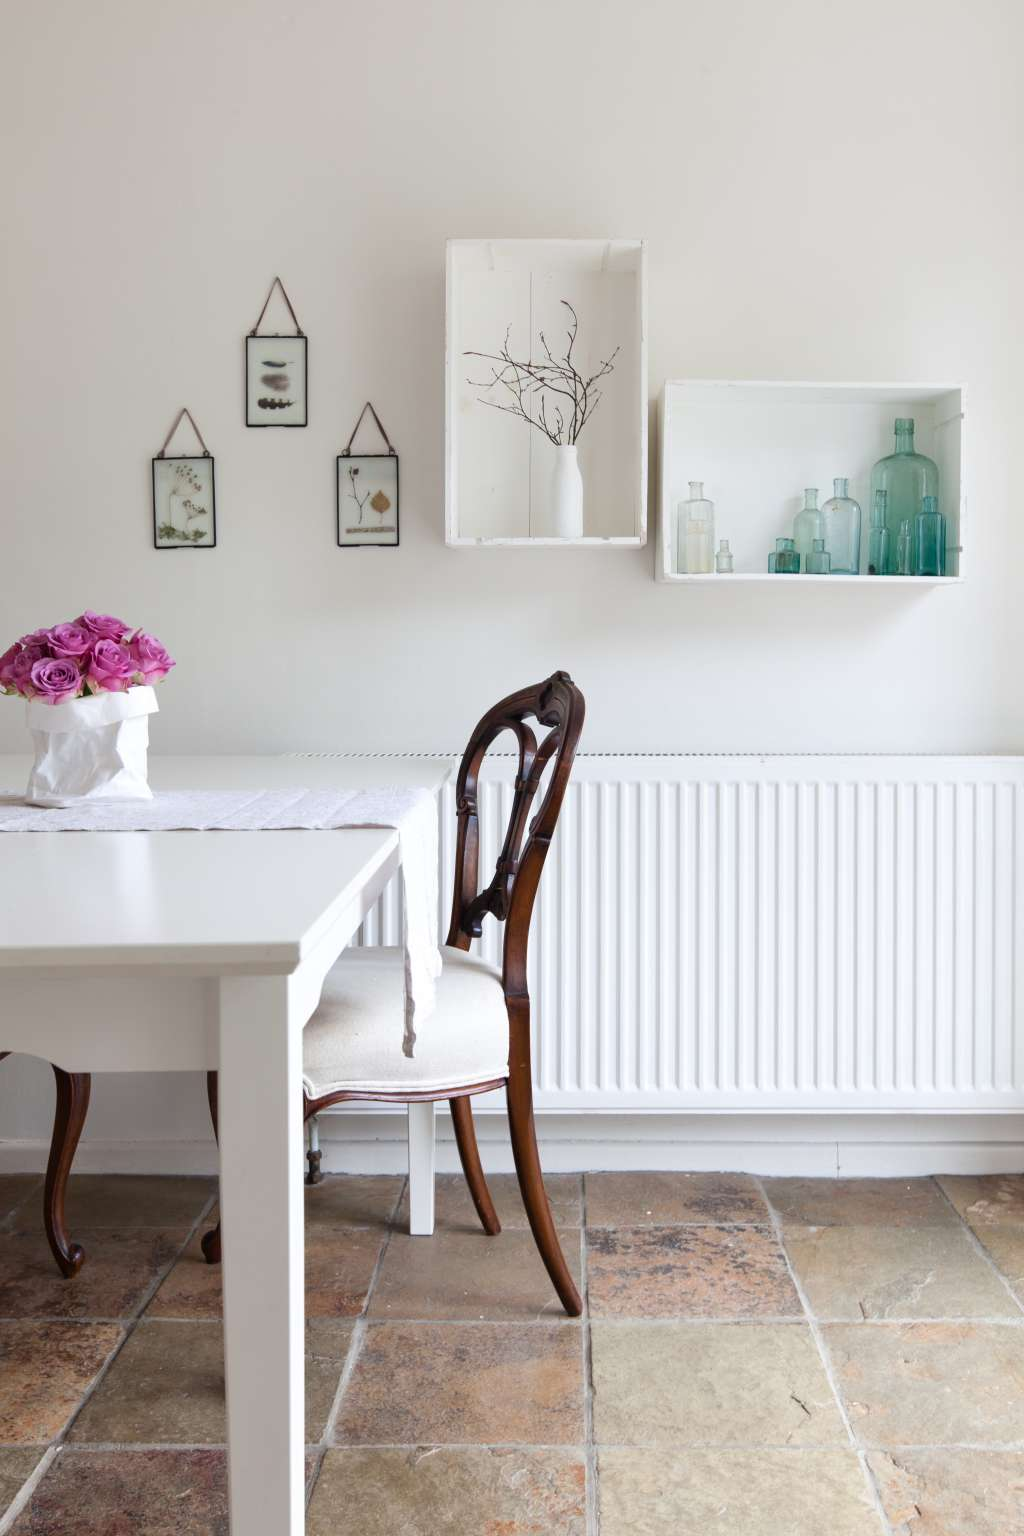 Want Your Home to Get Clean and Stay Clean? Sharpen These 5 Skills